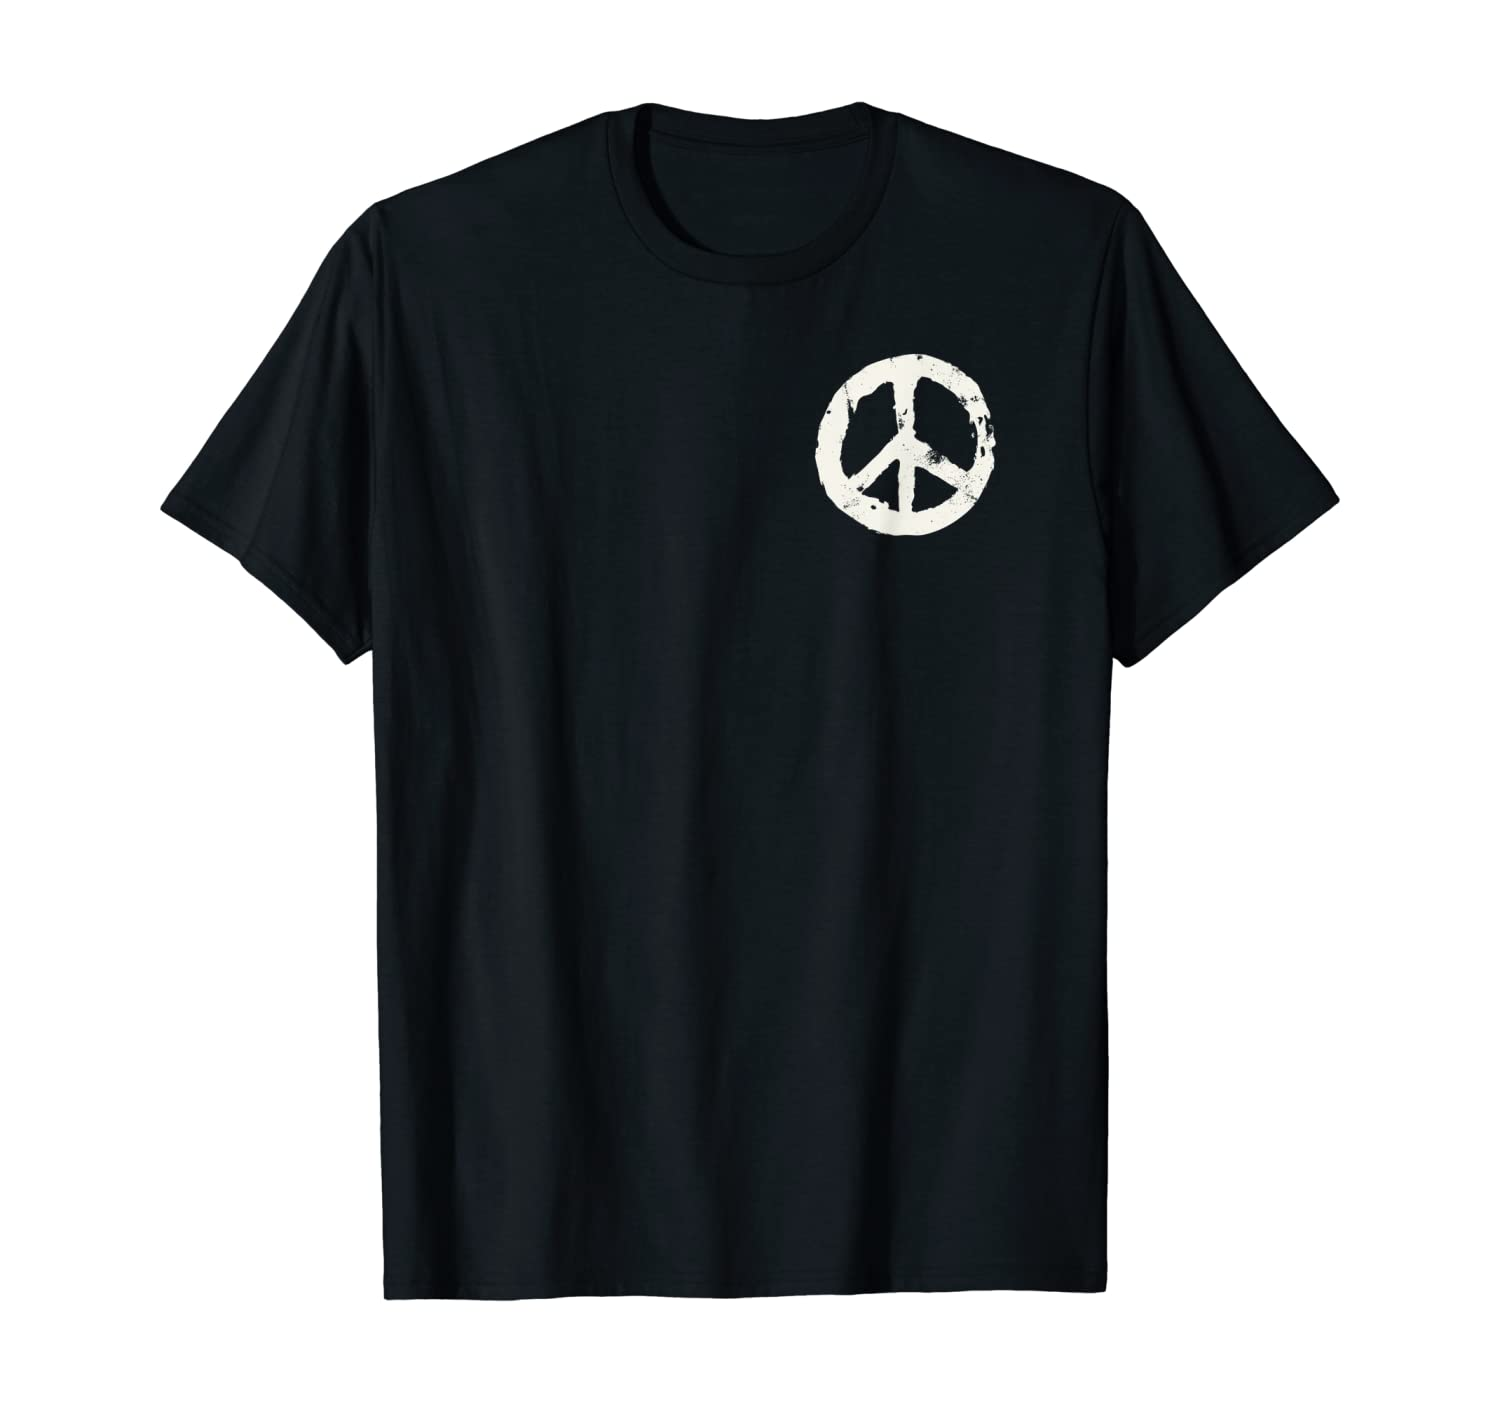 Hippie shirt Hippie symbol print on pocket t shirt gift idea